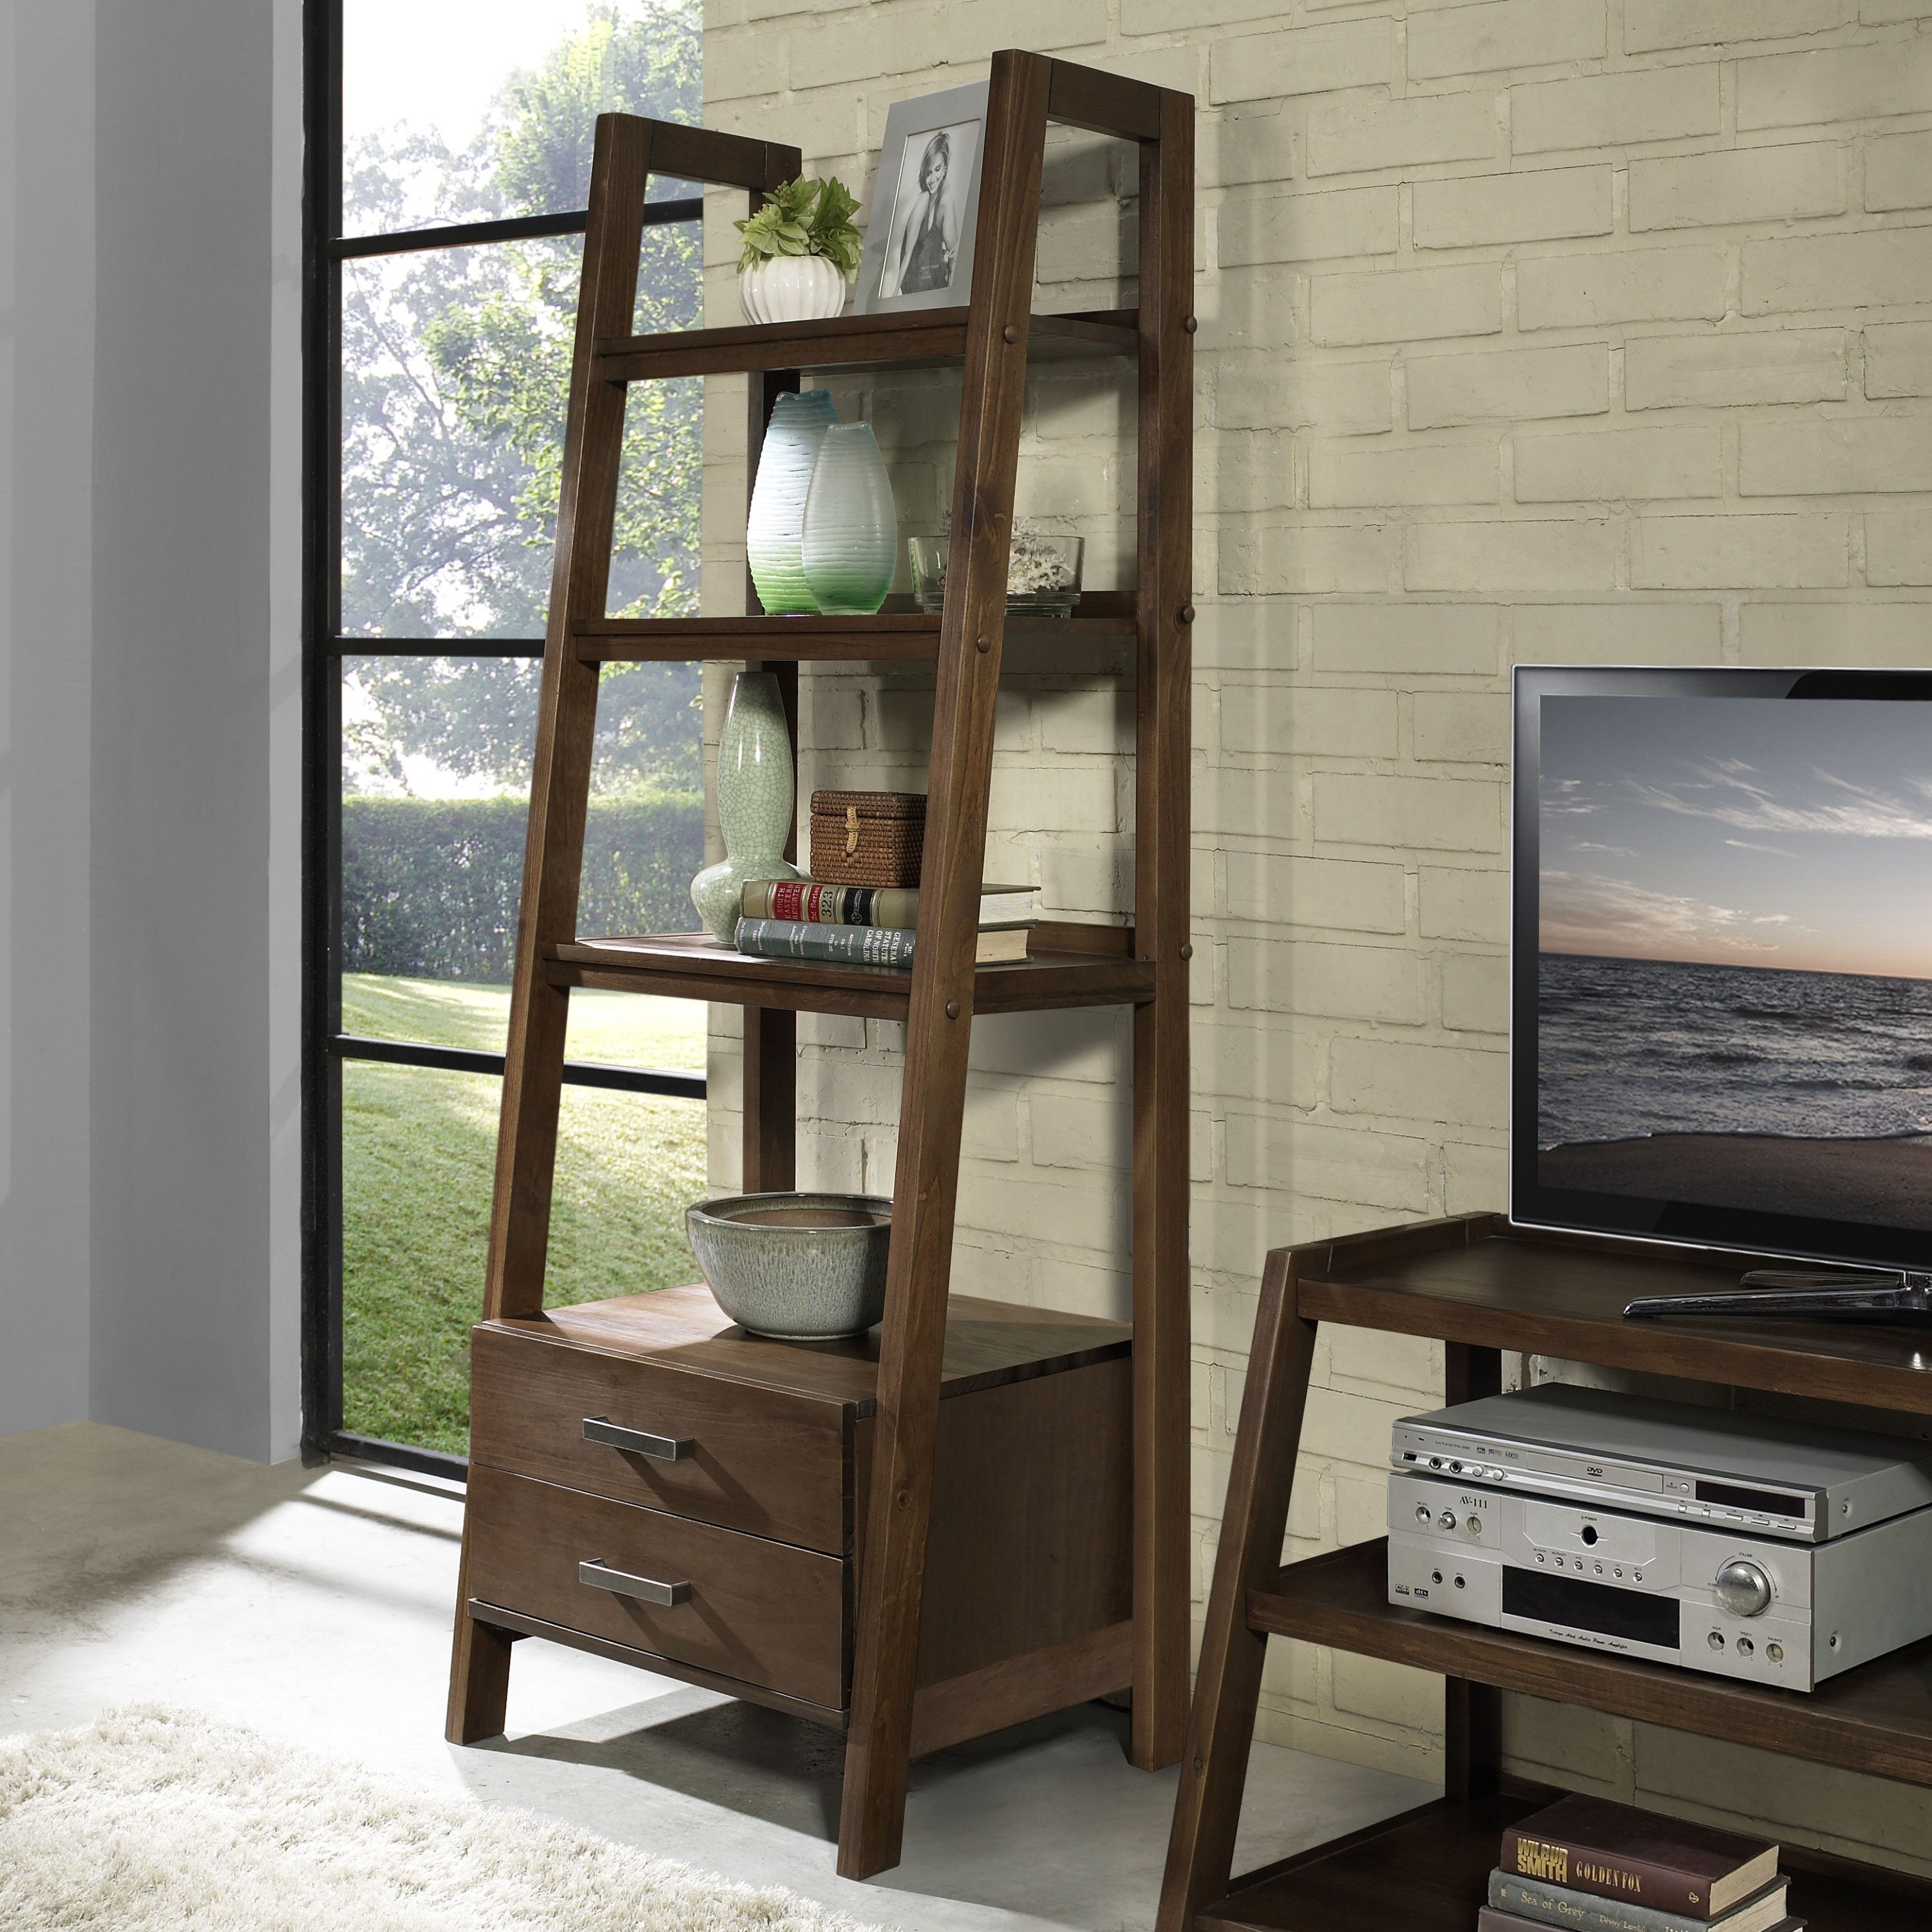 Pleasing The Hawkins Collection Has Two Different Types Of Ladder Beutiful Home Inspiration Semekurdistantinfo